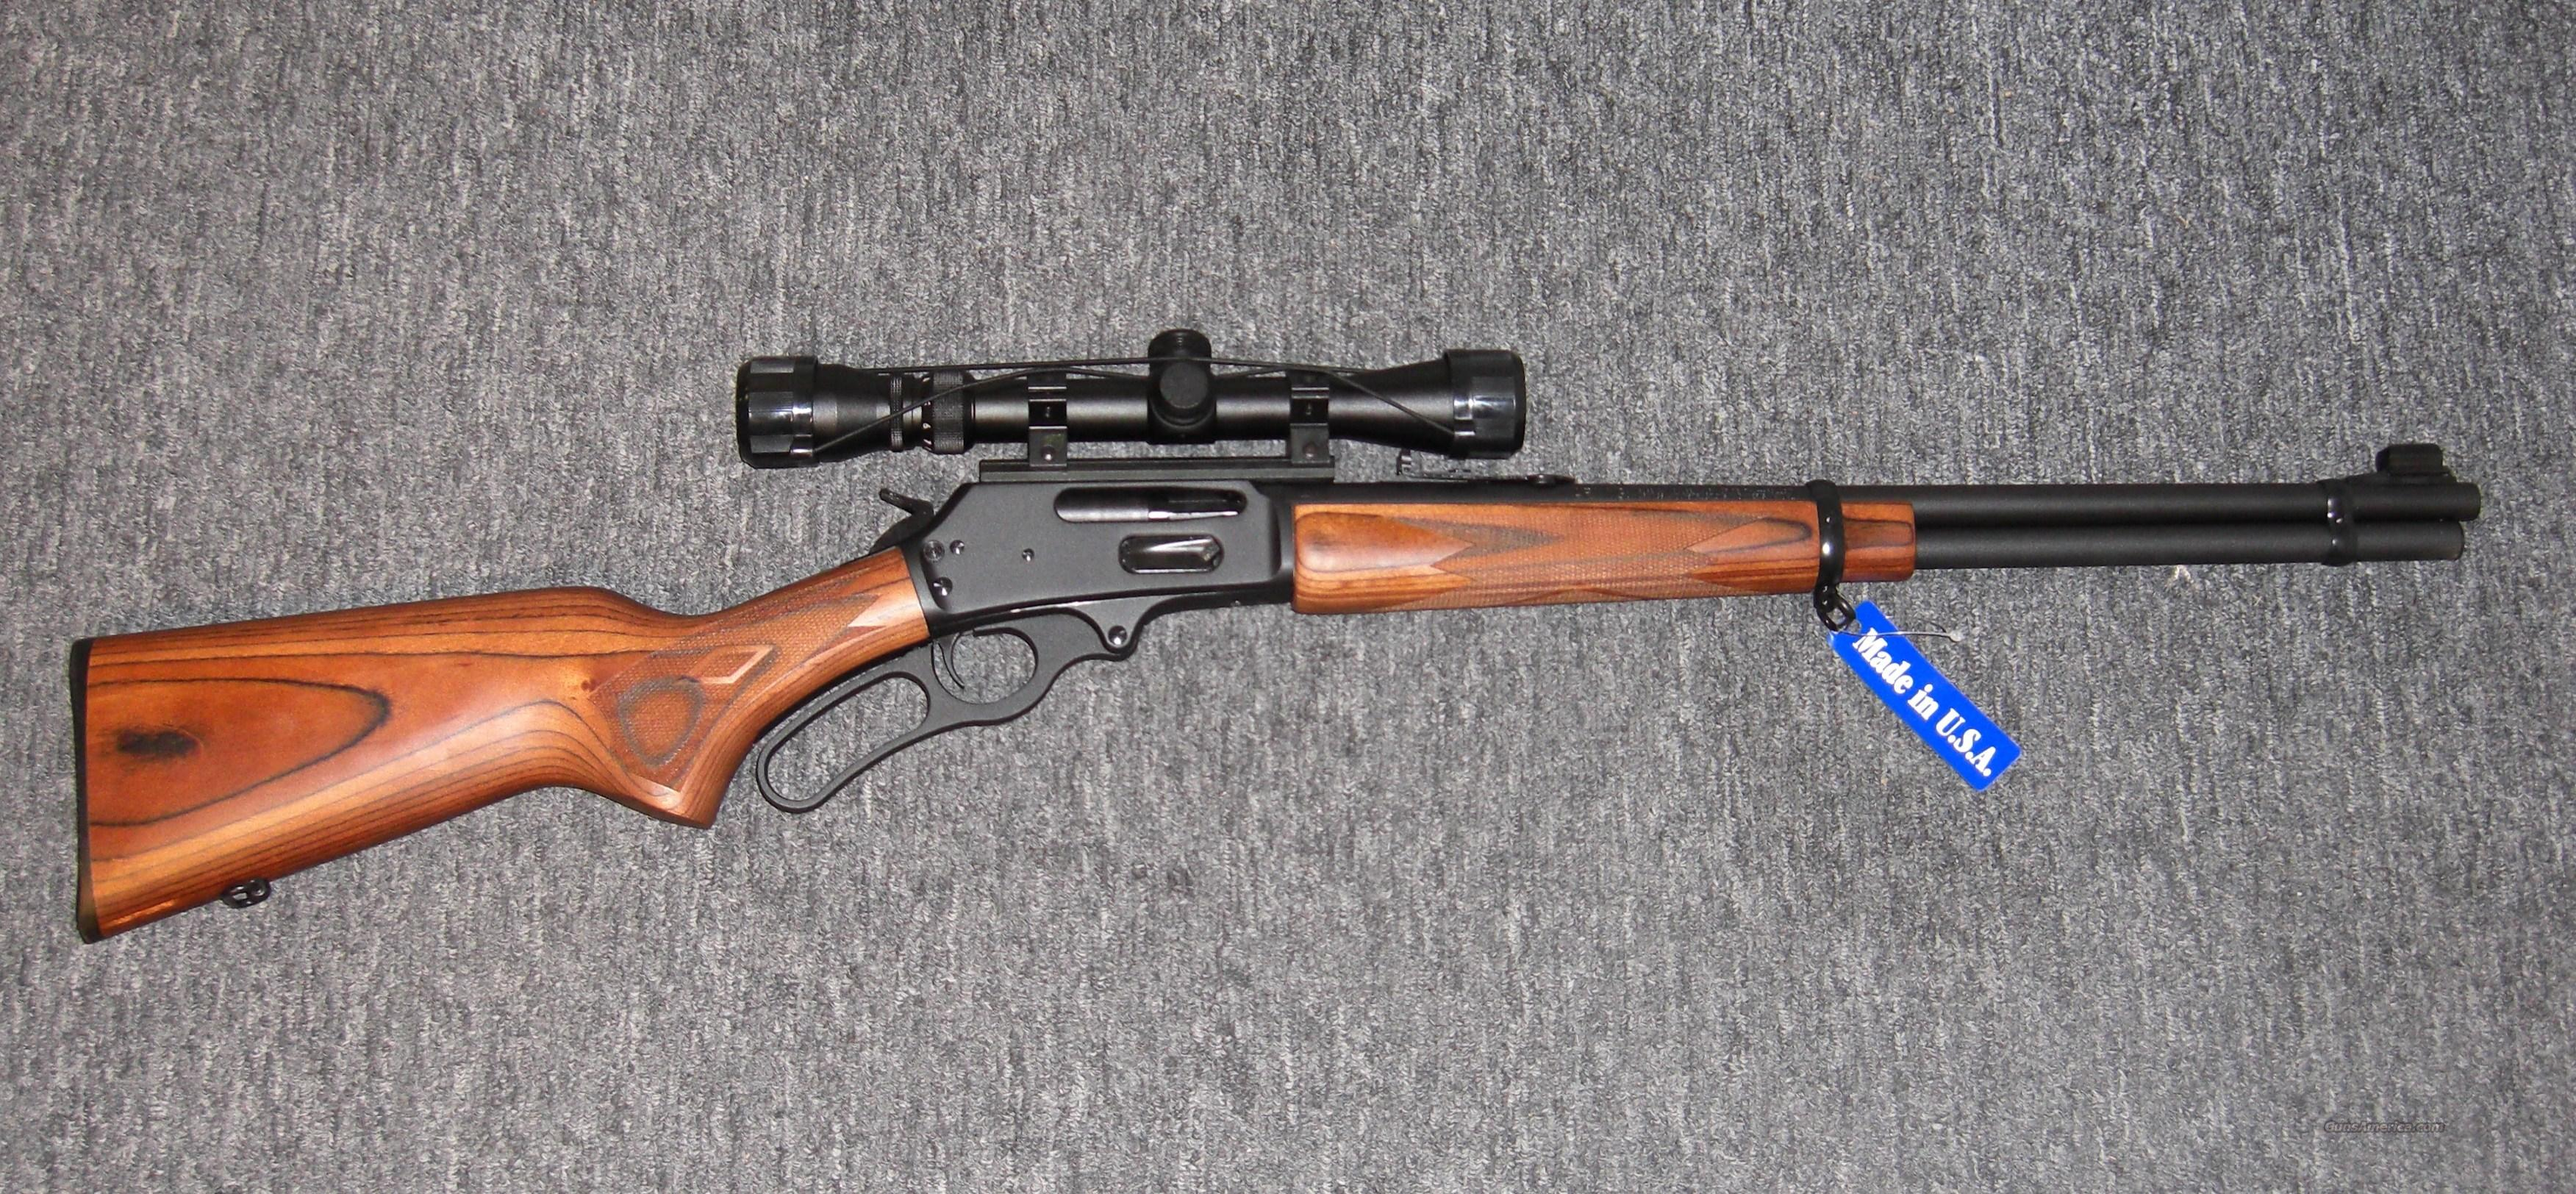 336W w/3-9x40 scope  Guns > Rifles > Marlin Rifles > Modern > Lever Action